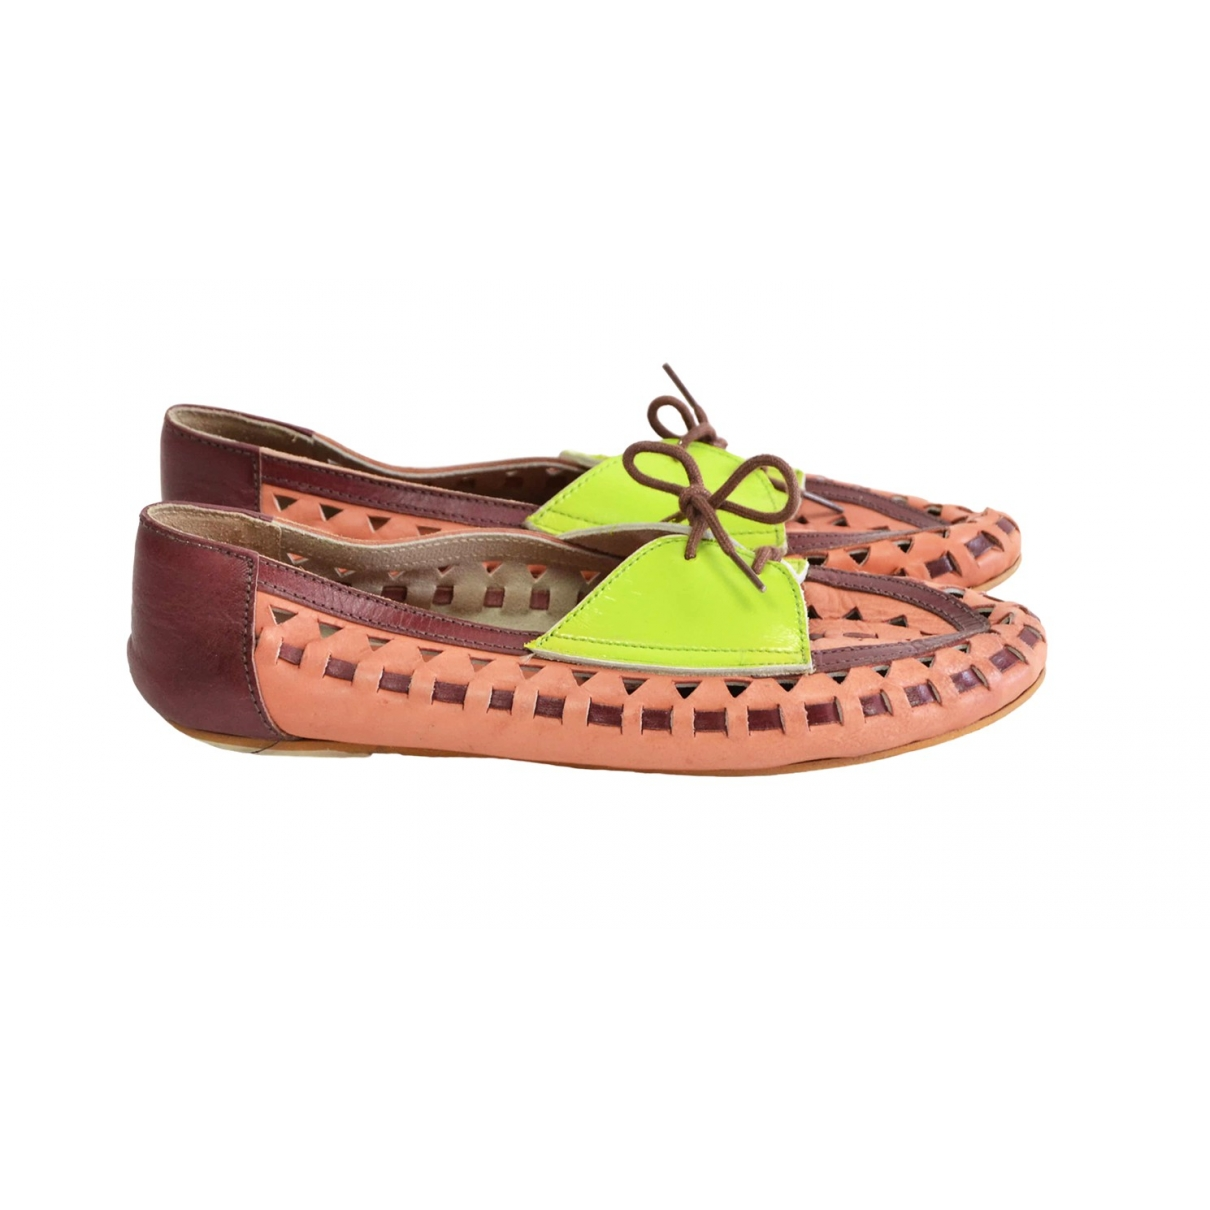 Asos \N Multicolour Leather Flats for Women 5 UK